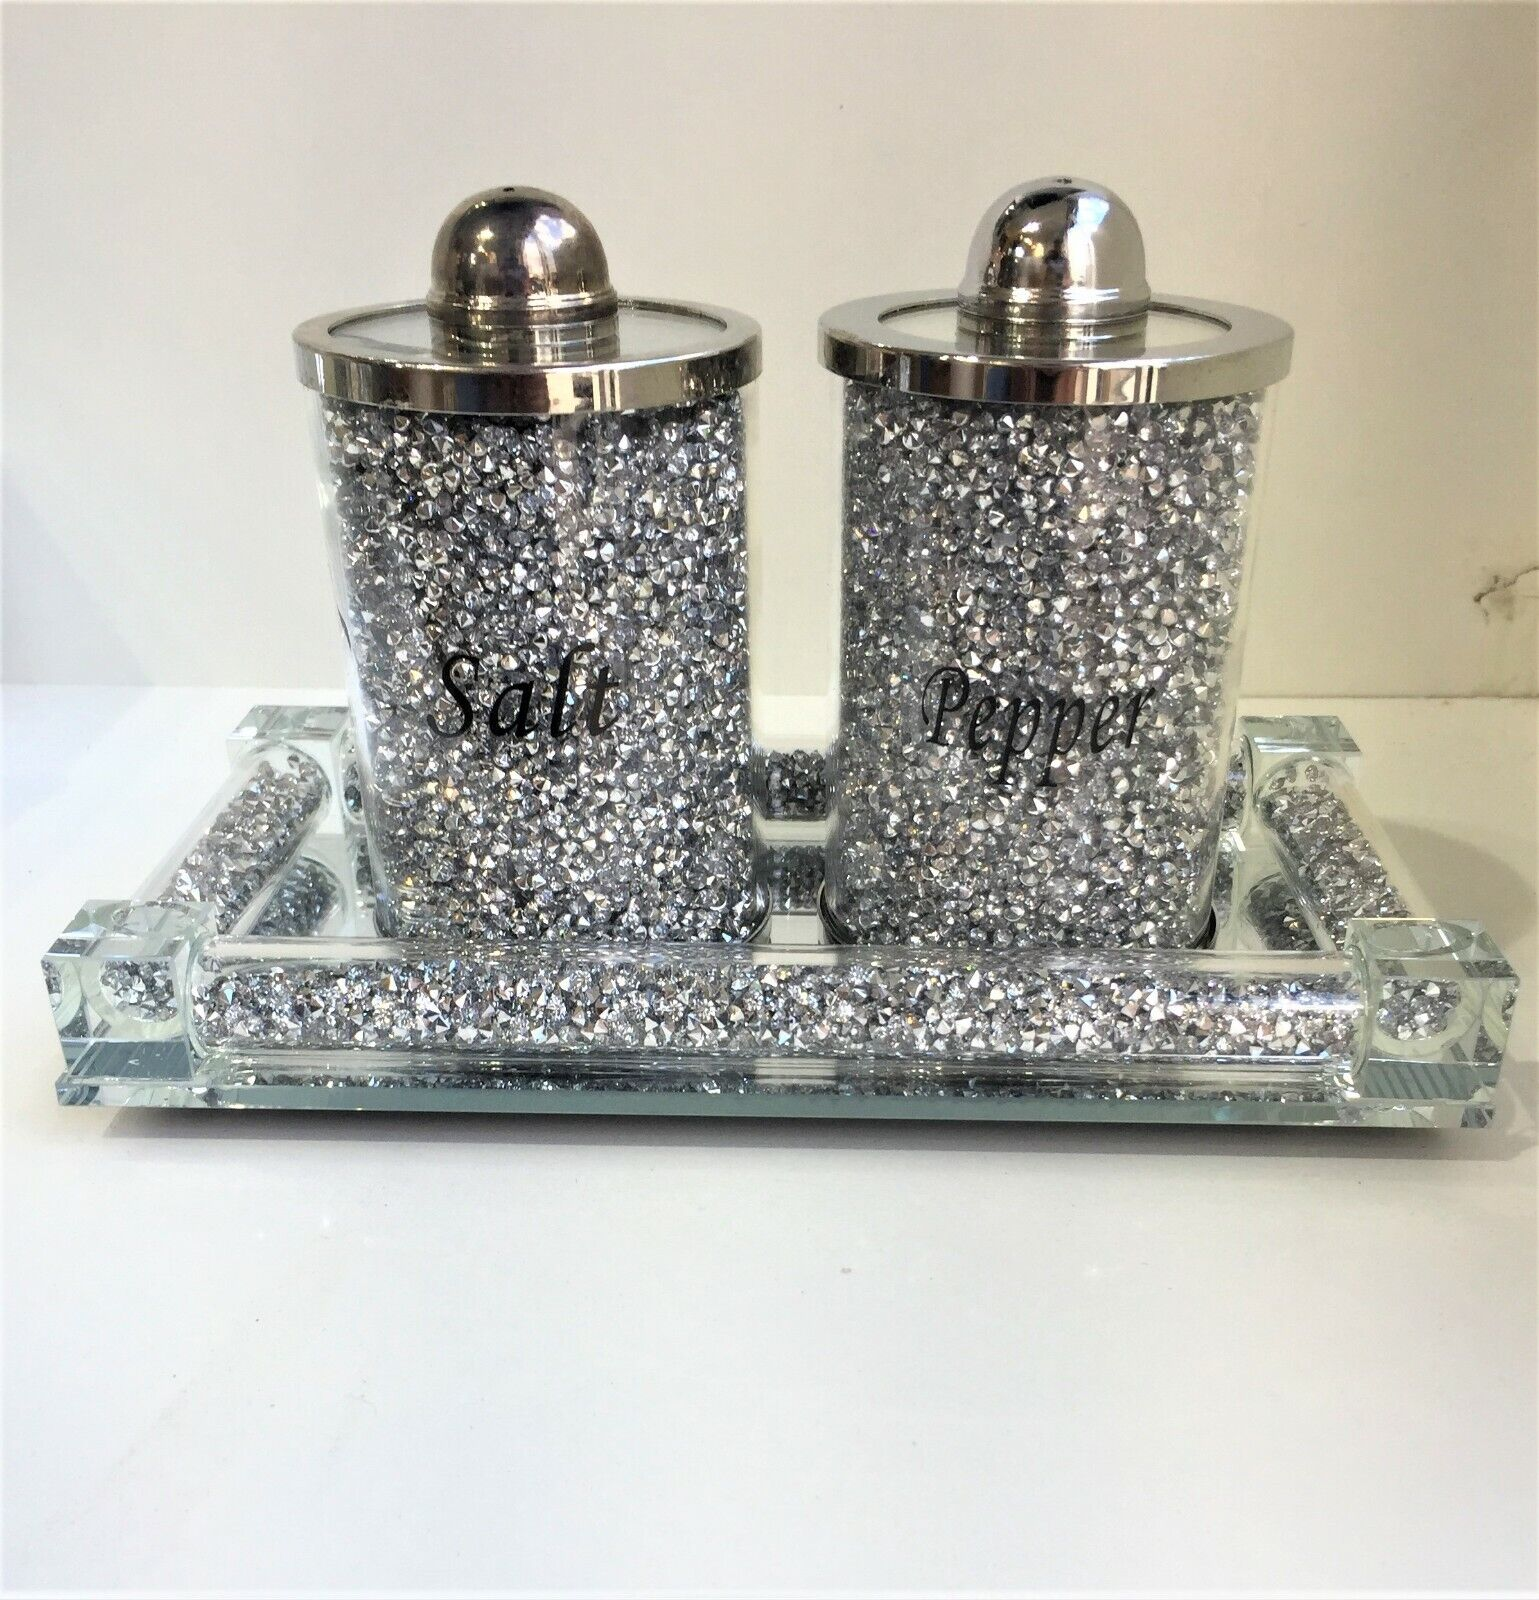 SPARKLY BLING CRUSHED CRYSTAL DIAMOND FILLED SILVER SALT PEPPER TRAY✨